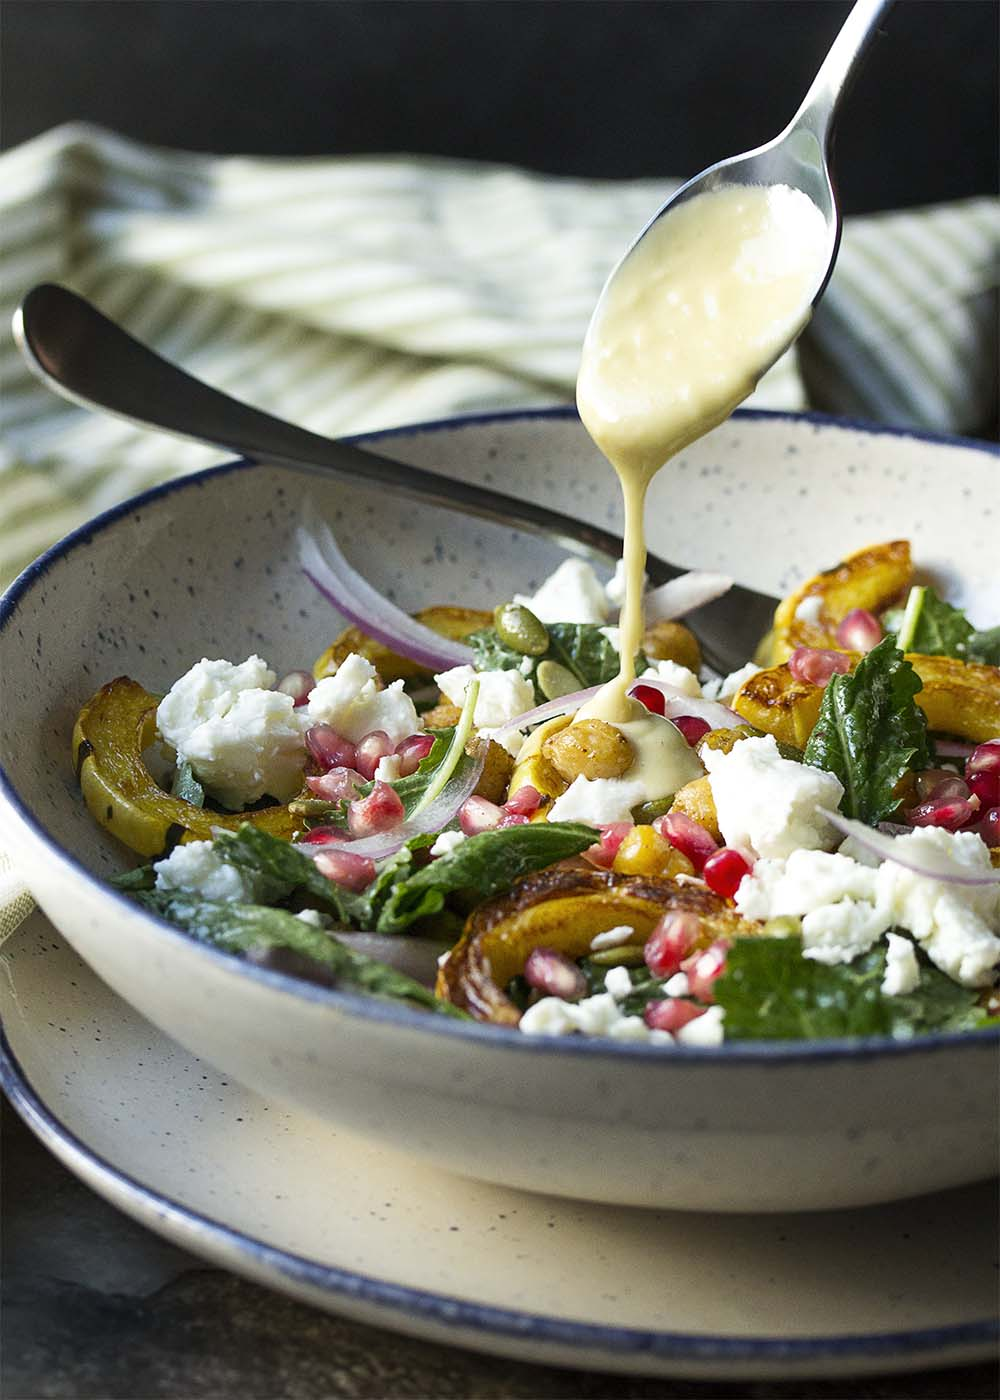 A spoon drizzling some creamy tahini dressing into the delicata squash salad.